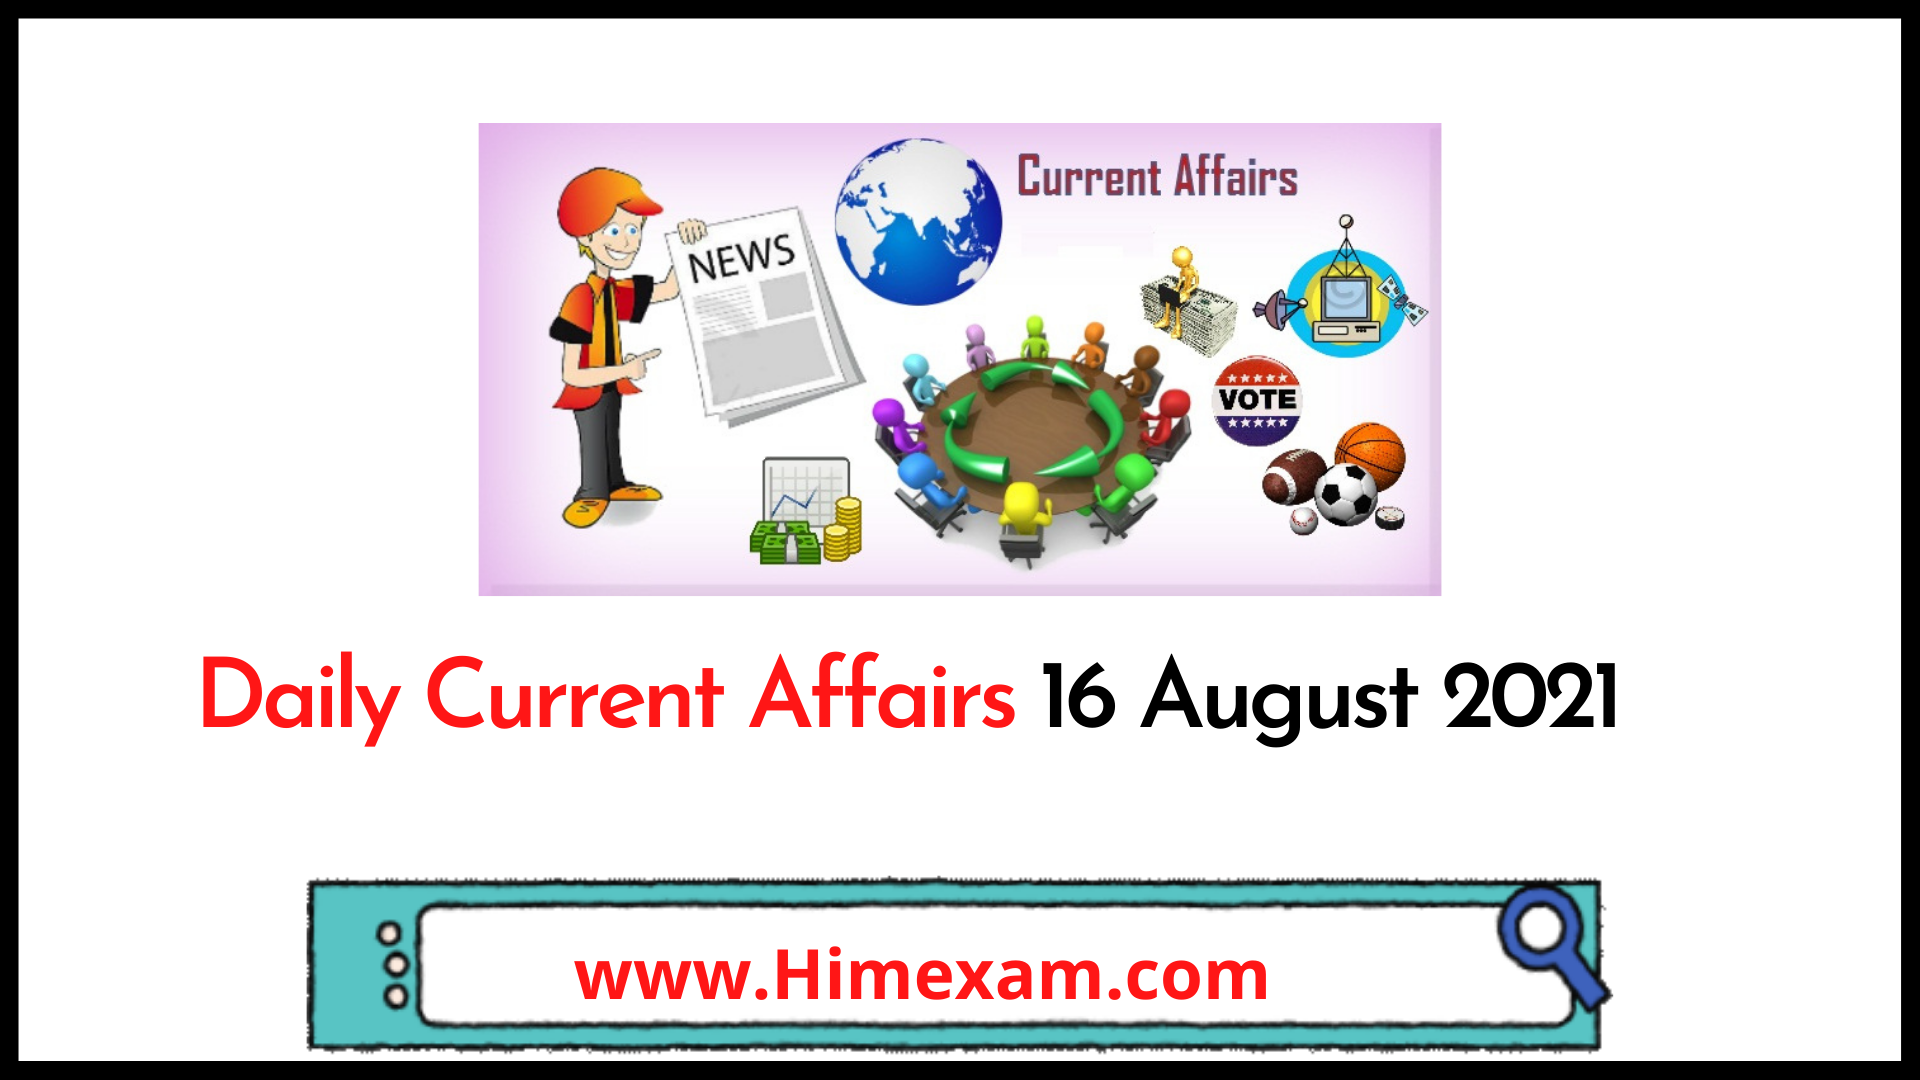 Daily Current Affairs 16 August 2021